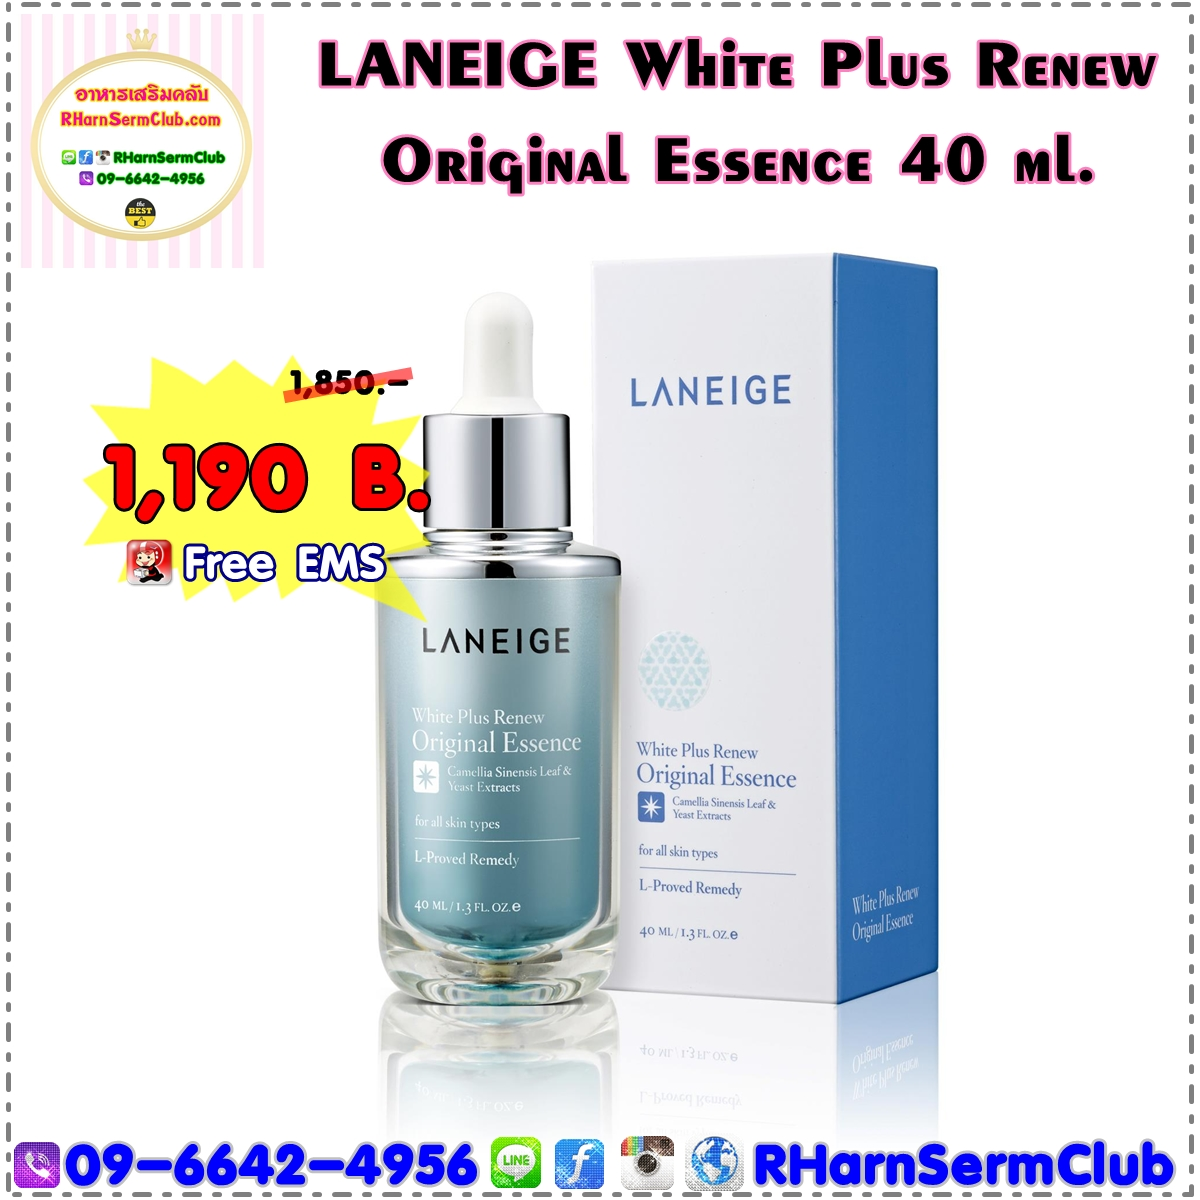 Laneige White Plus Renew Original Essence 40 ml.